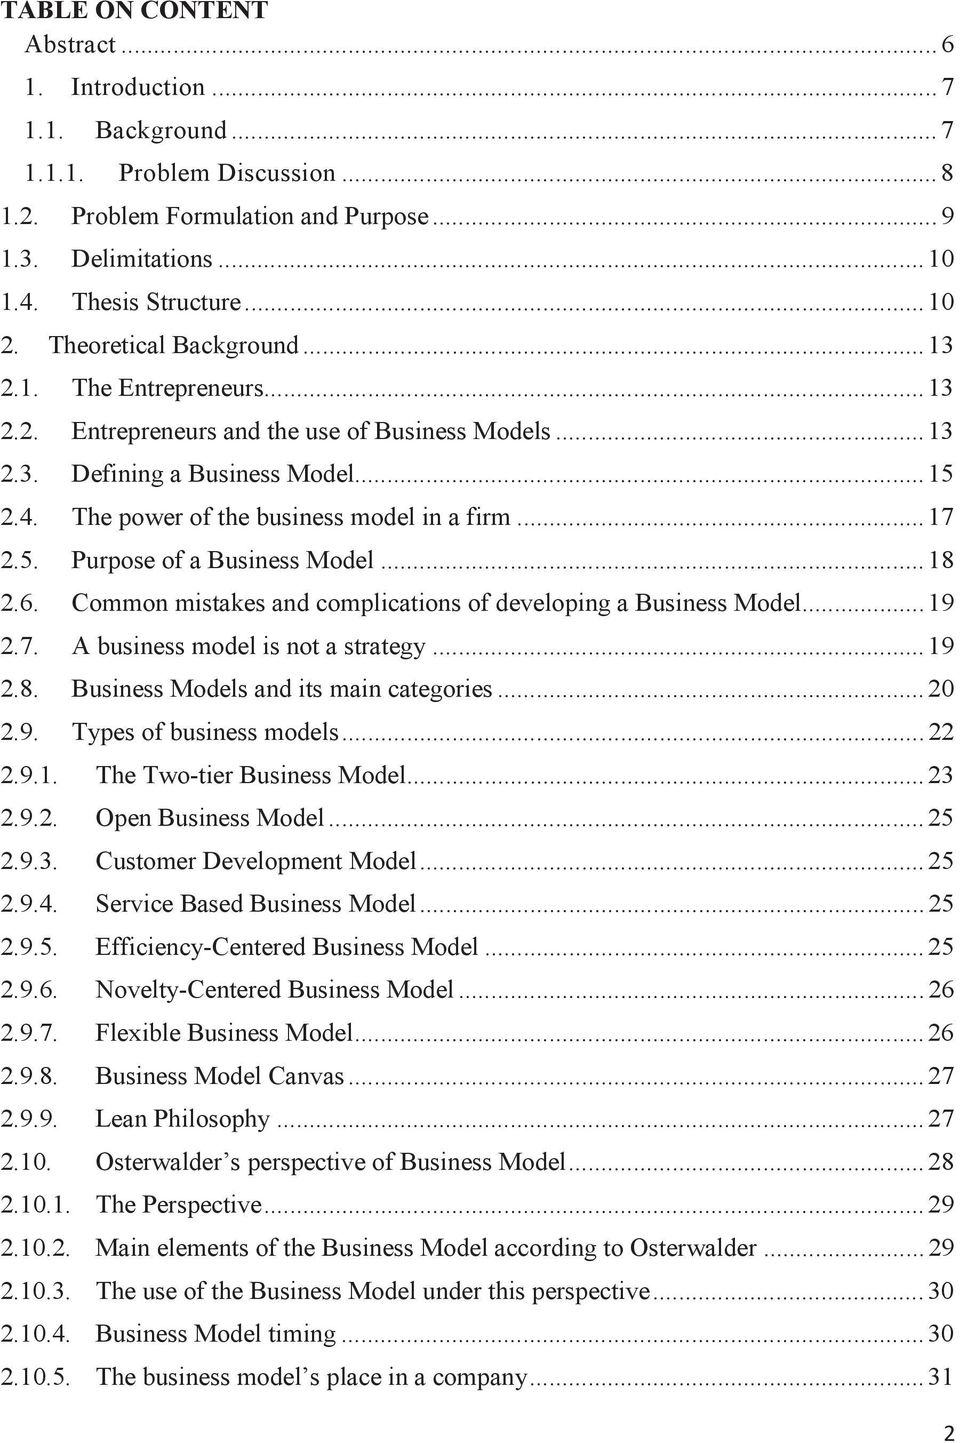 .. 17 2.5. Purpose of a Business Model... 18 2.6. Common mistakes and complications of developing a Business Model... 19 2.7. A business model is not a strategy... 19 2.8. Business Models and its main categories.